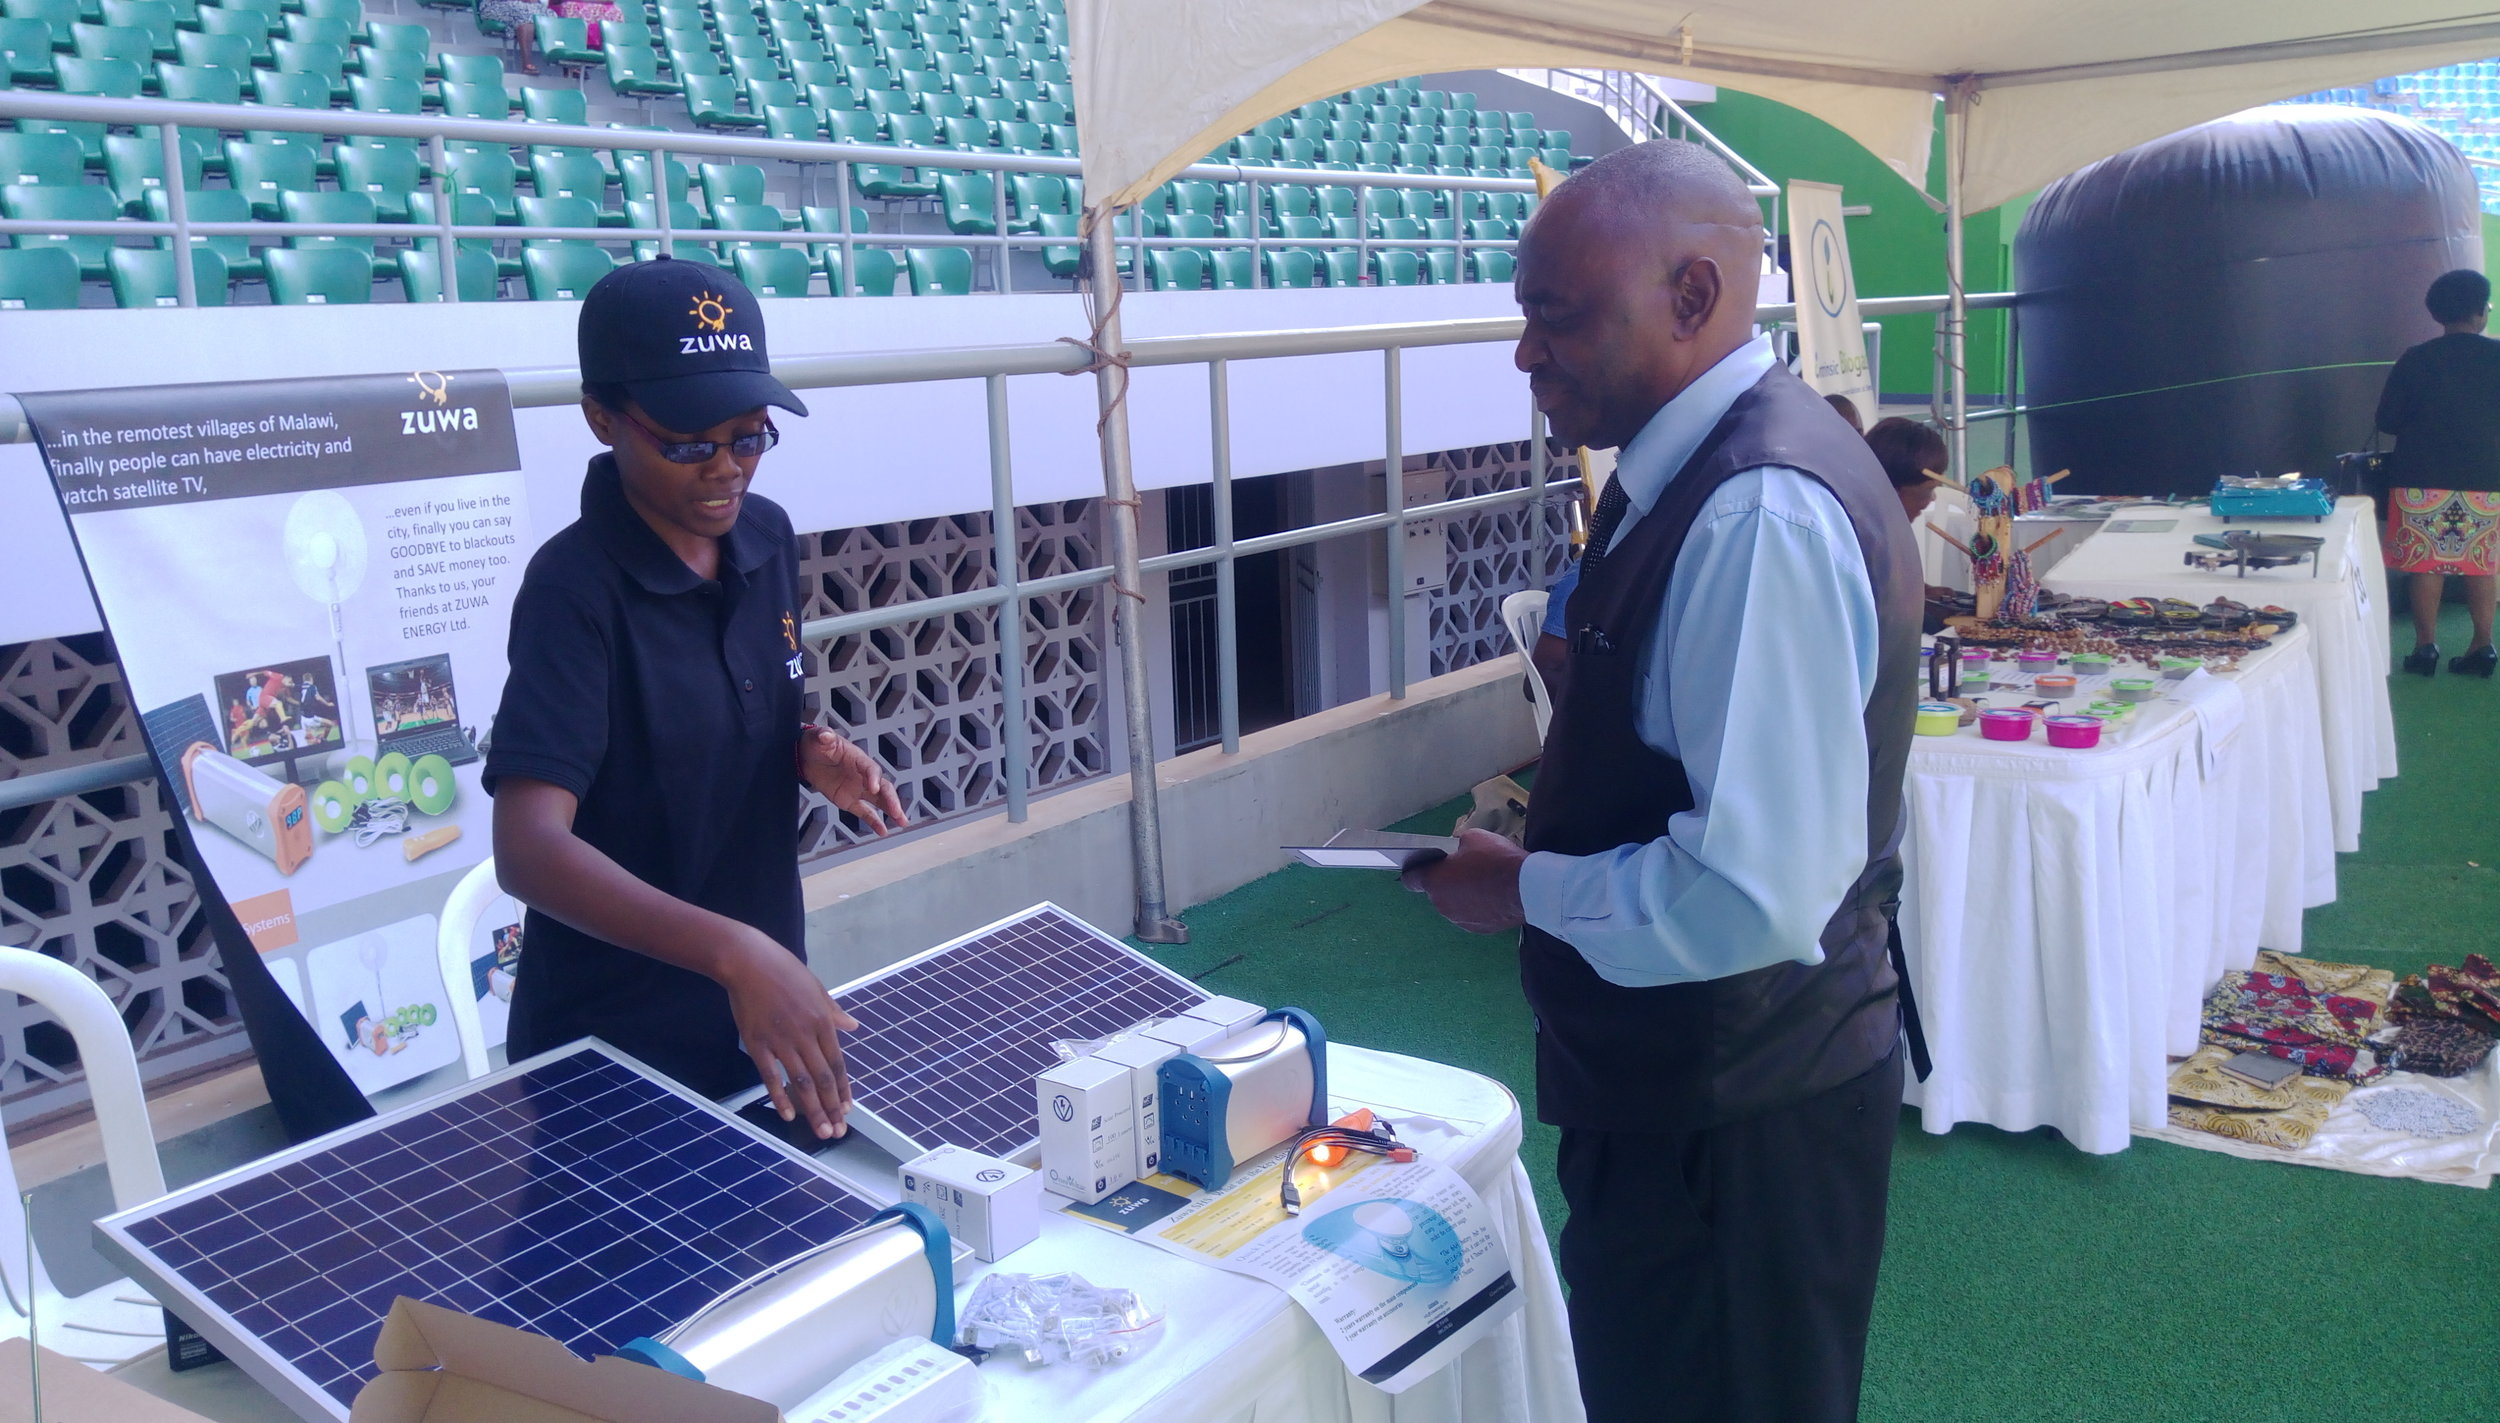 -       Our vision is to eradicate energy poverty and improve the lives of Malawians through access to clean, safe and affordable solar household systems by the year 2030.